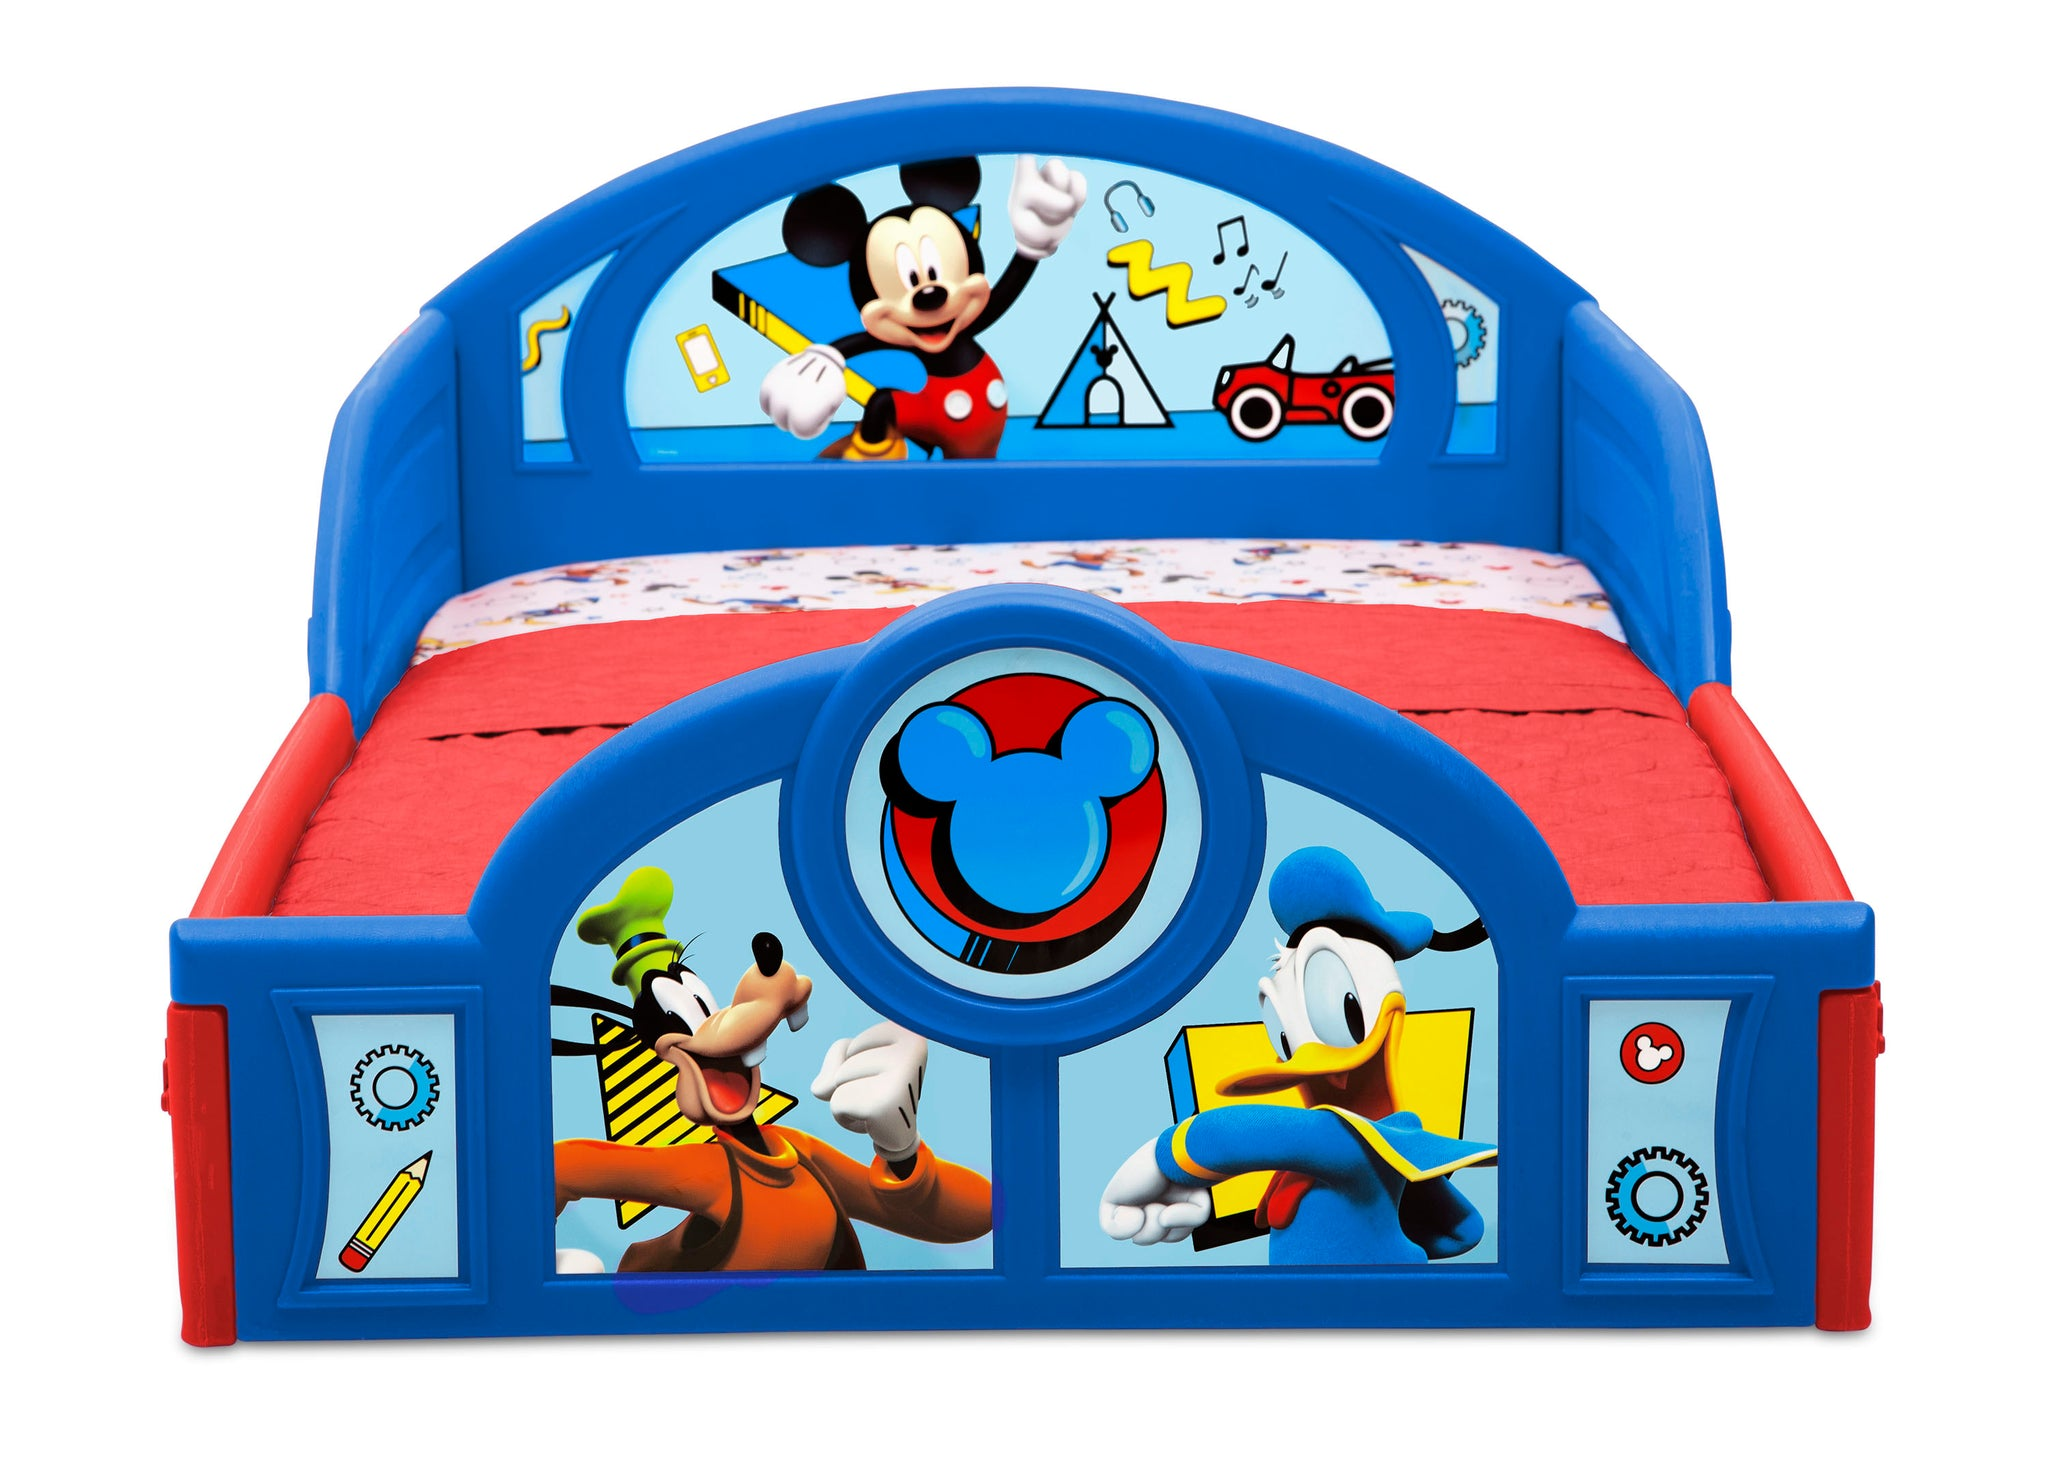 Mickey Hot Dog (1054) Delta Children Mickey Mouse Plastic Sleep and Play Toddler Bed, Footboard Detail View